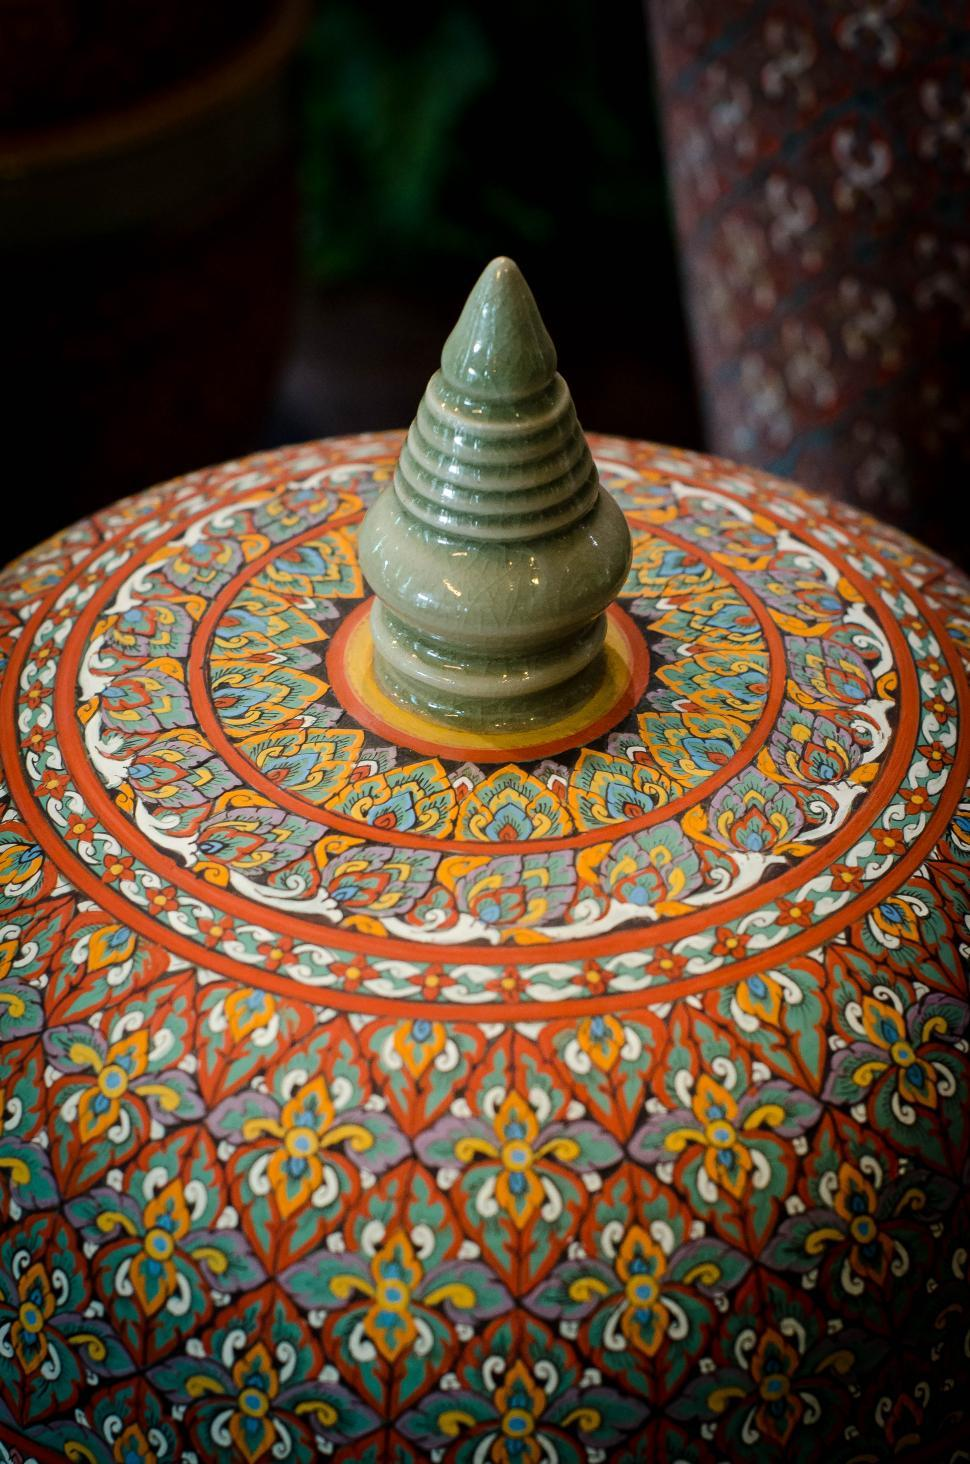 Download Free Stock HD Photo of Thai pattern style jar Online